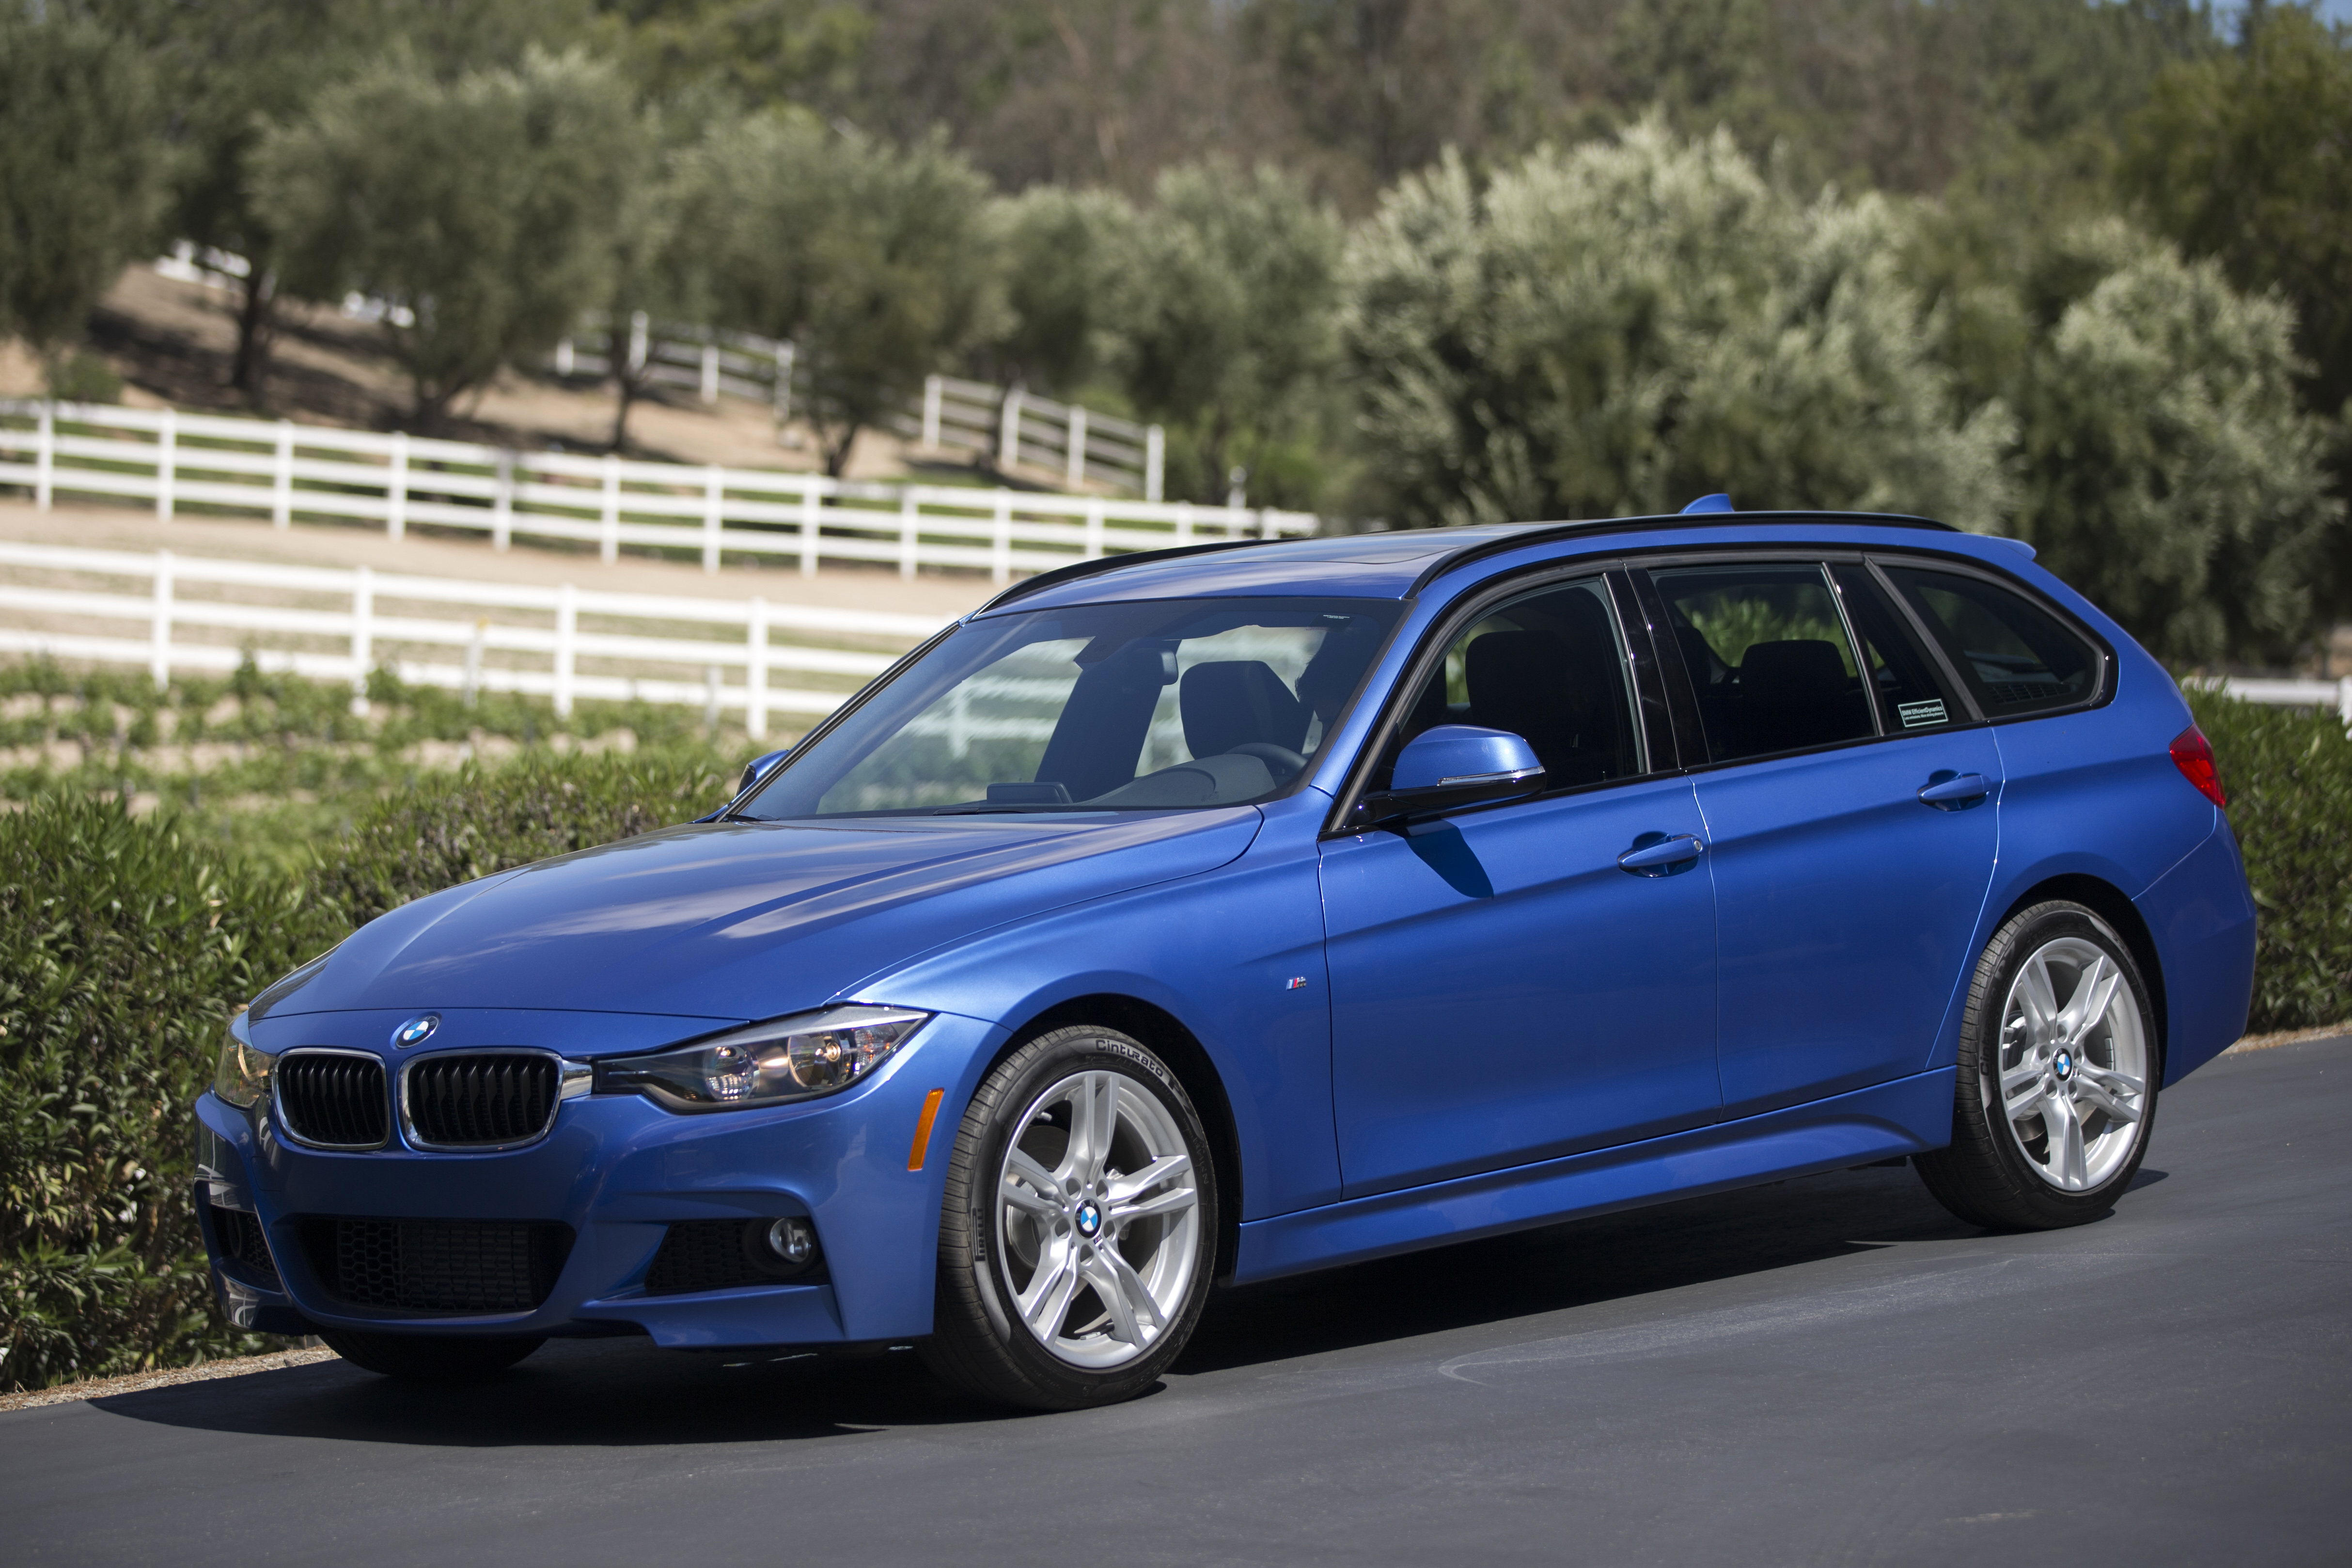 BMW Series Diesel Wagon Review The Family Bimmer The Car Family - Bmw 328d xdrive wagon